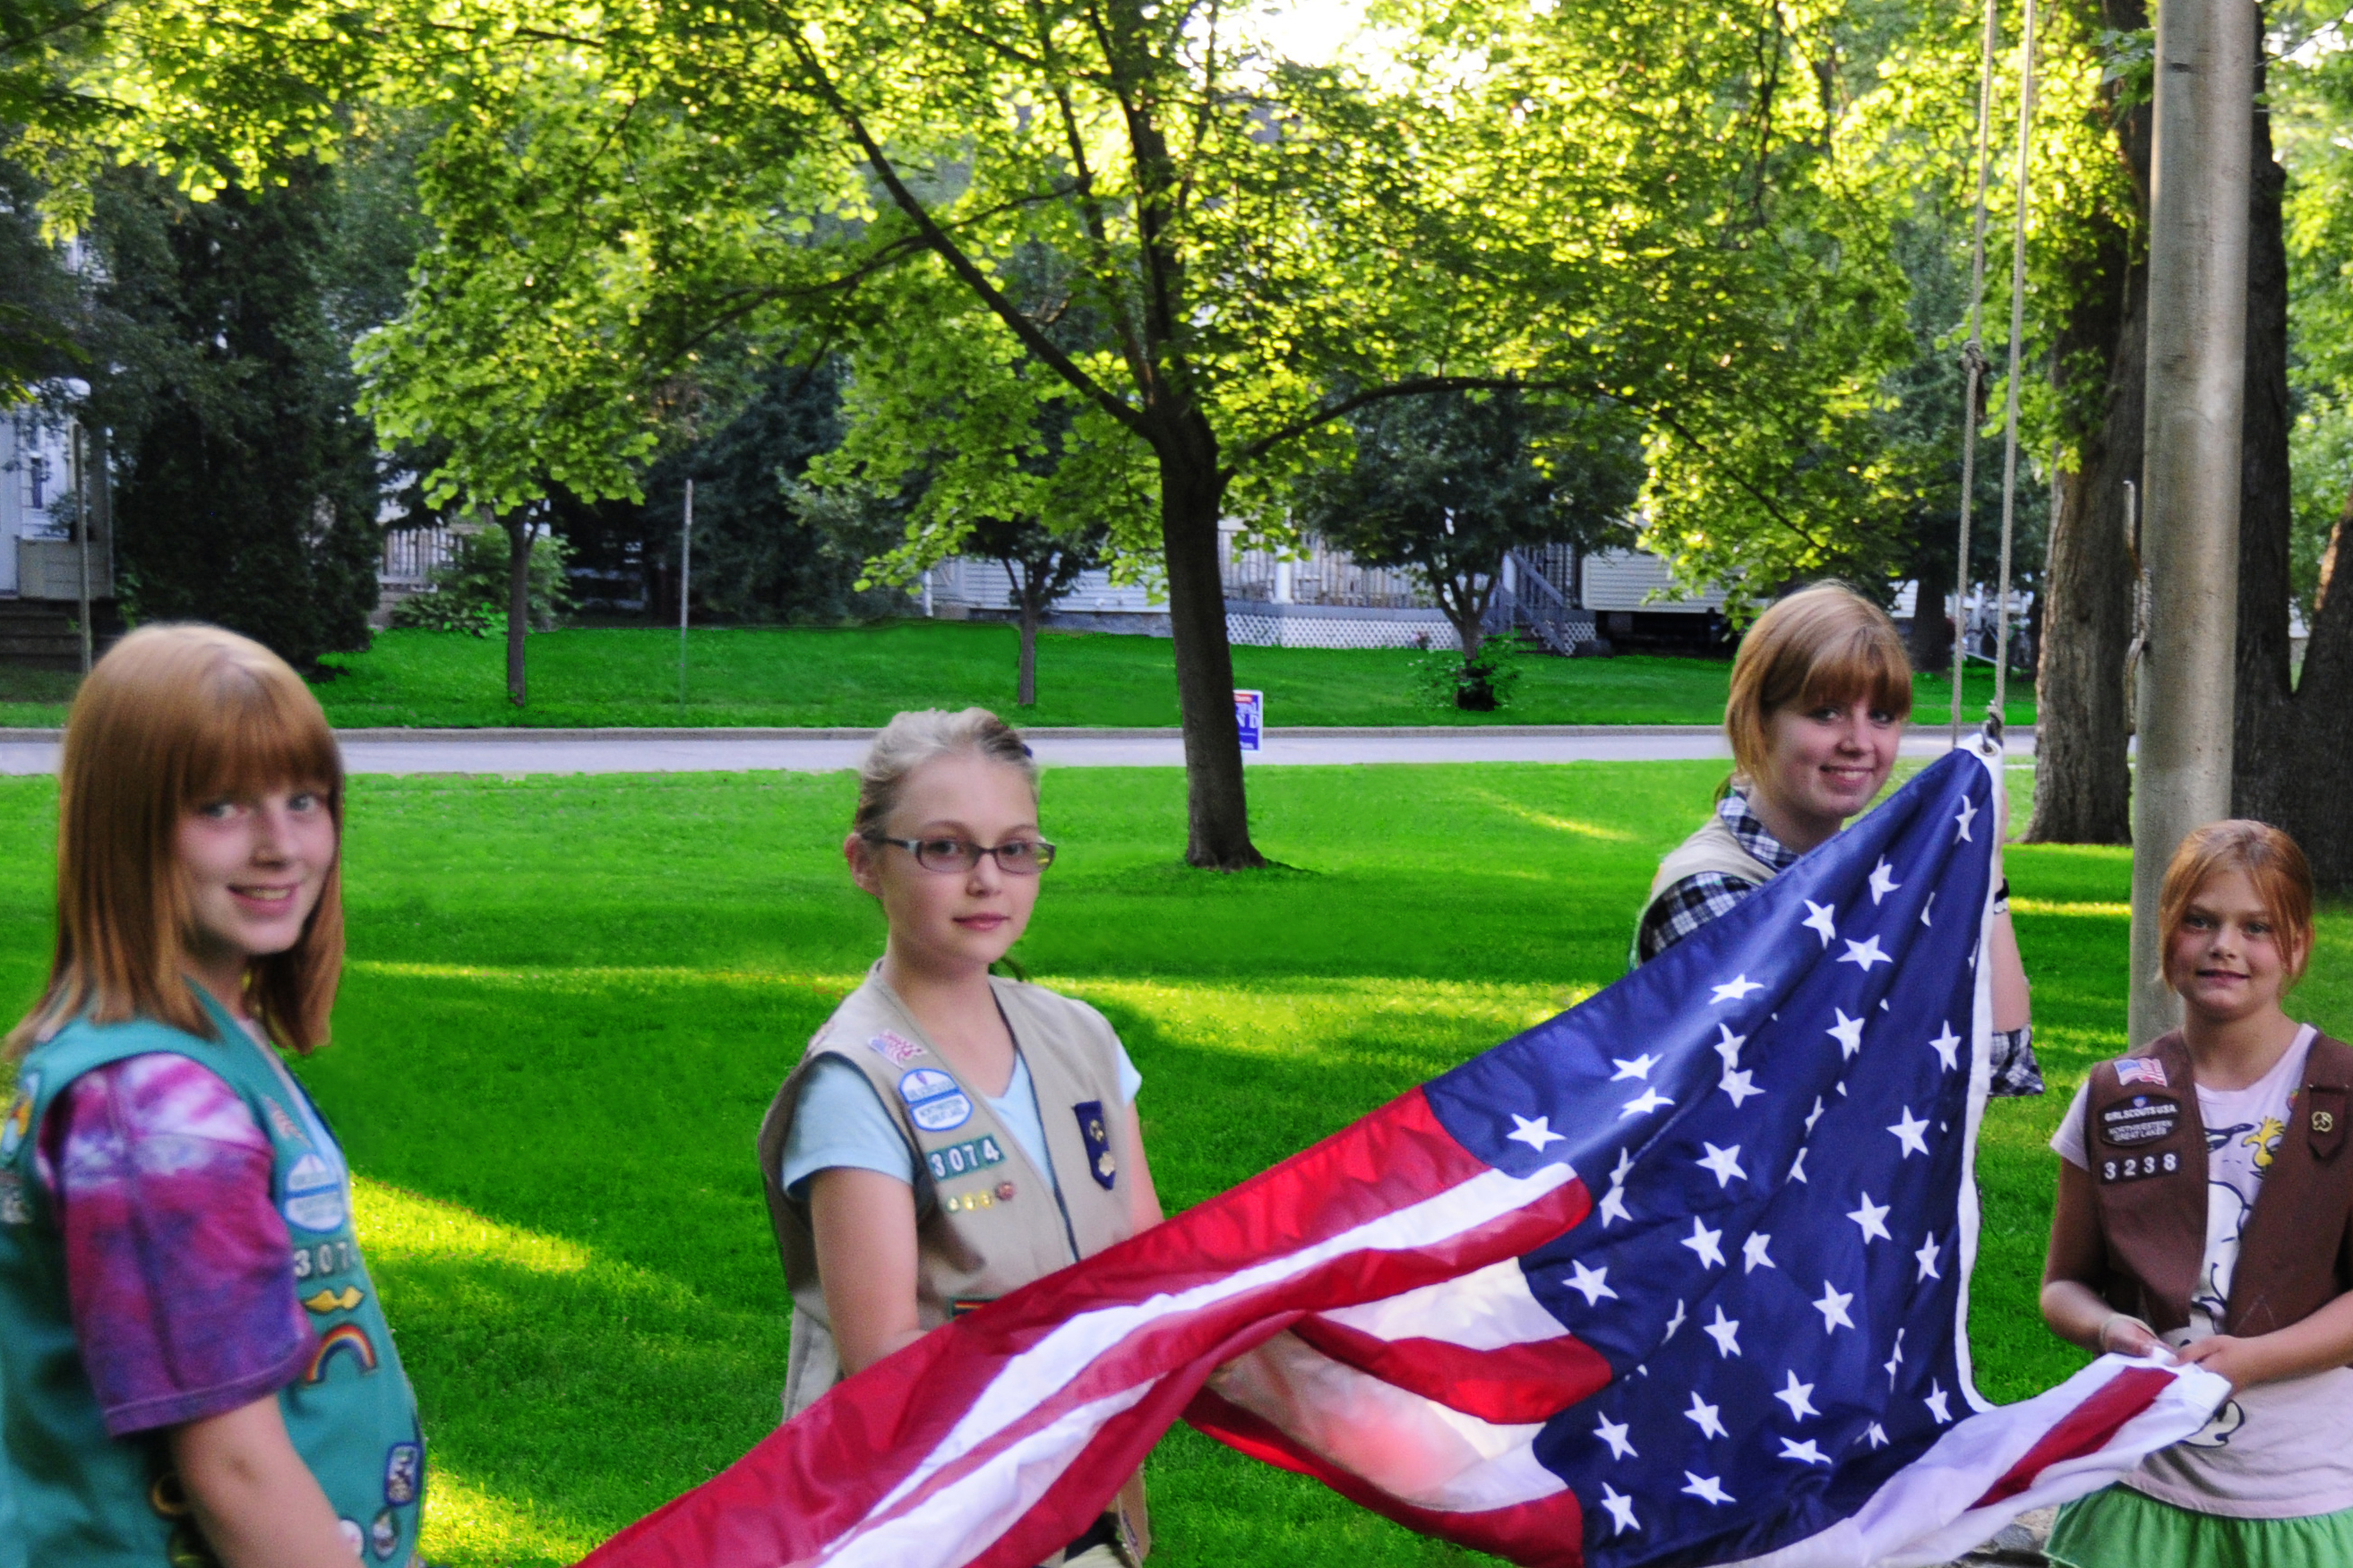 File:Girl Scouts raising the American flag.jpg - Wikimedia Commons